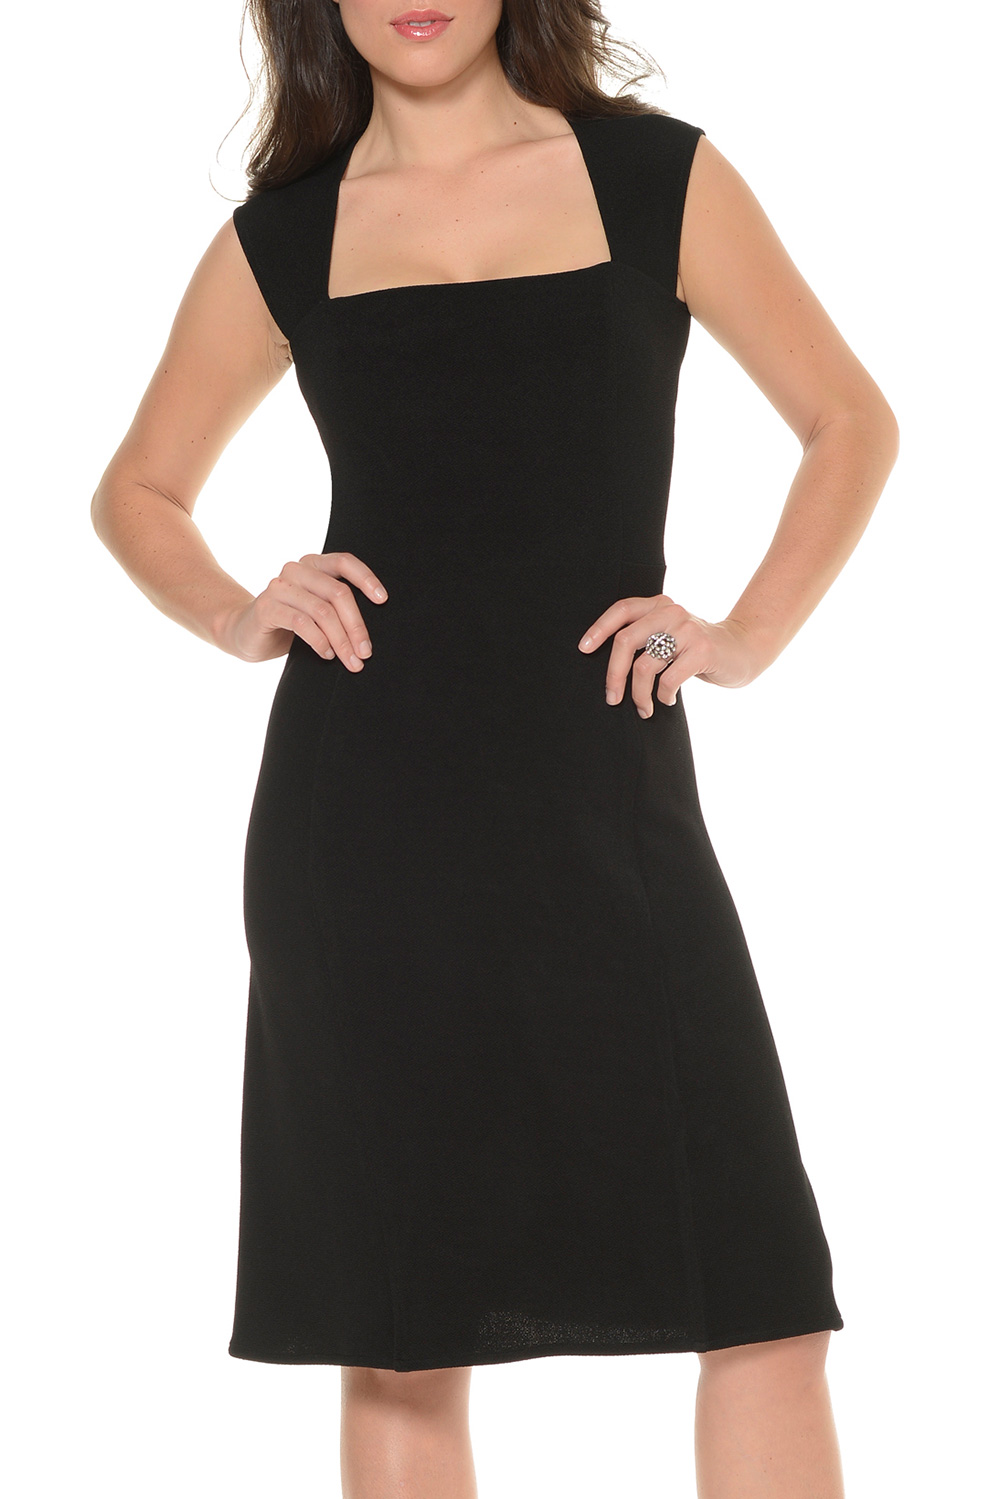 Sacha Drake Olivia Cap Sleeve Dress